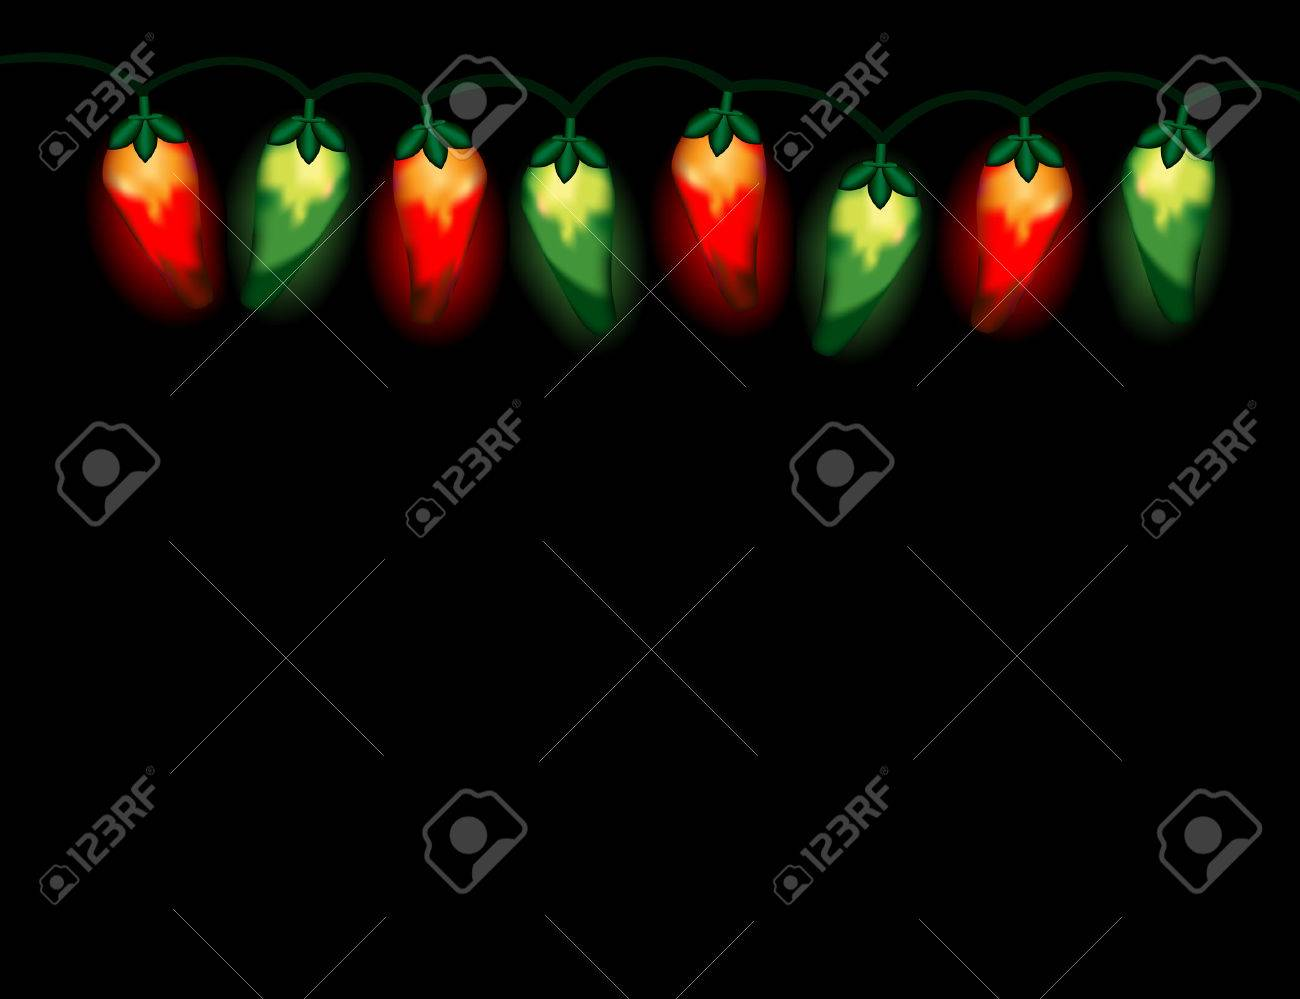 A String Of Chili Pepper Lights In Christmas Colors, Red And ...